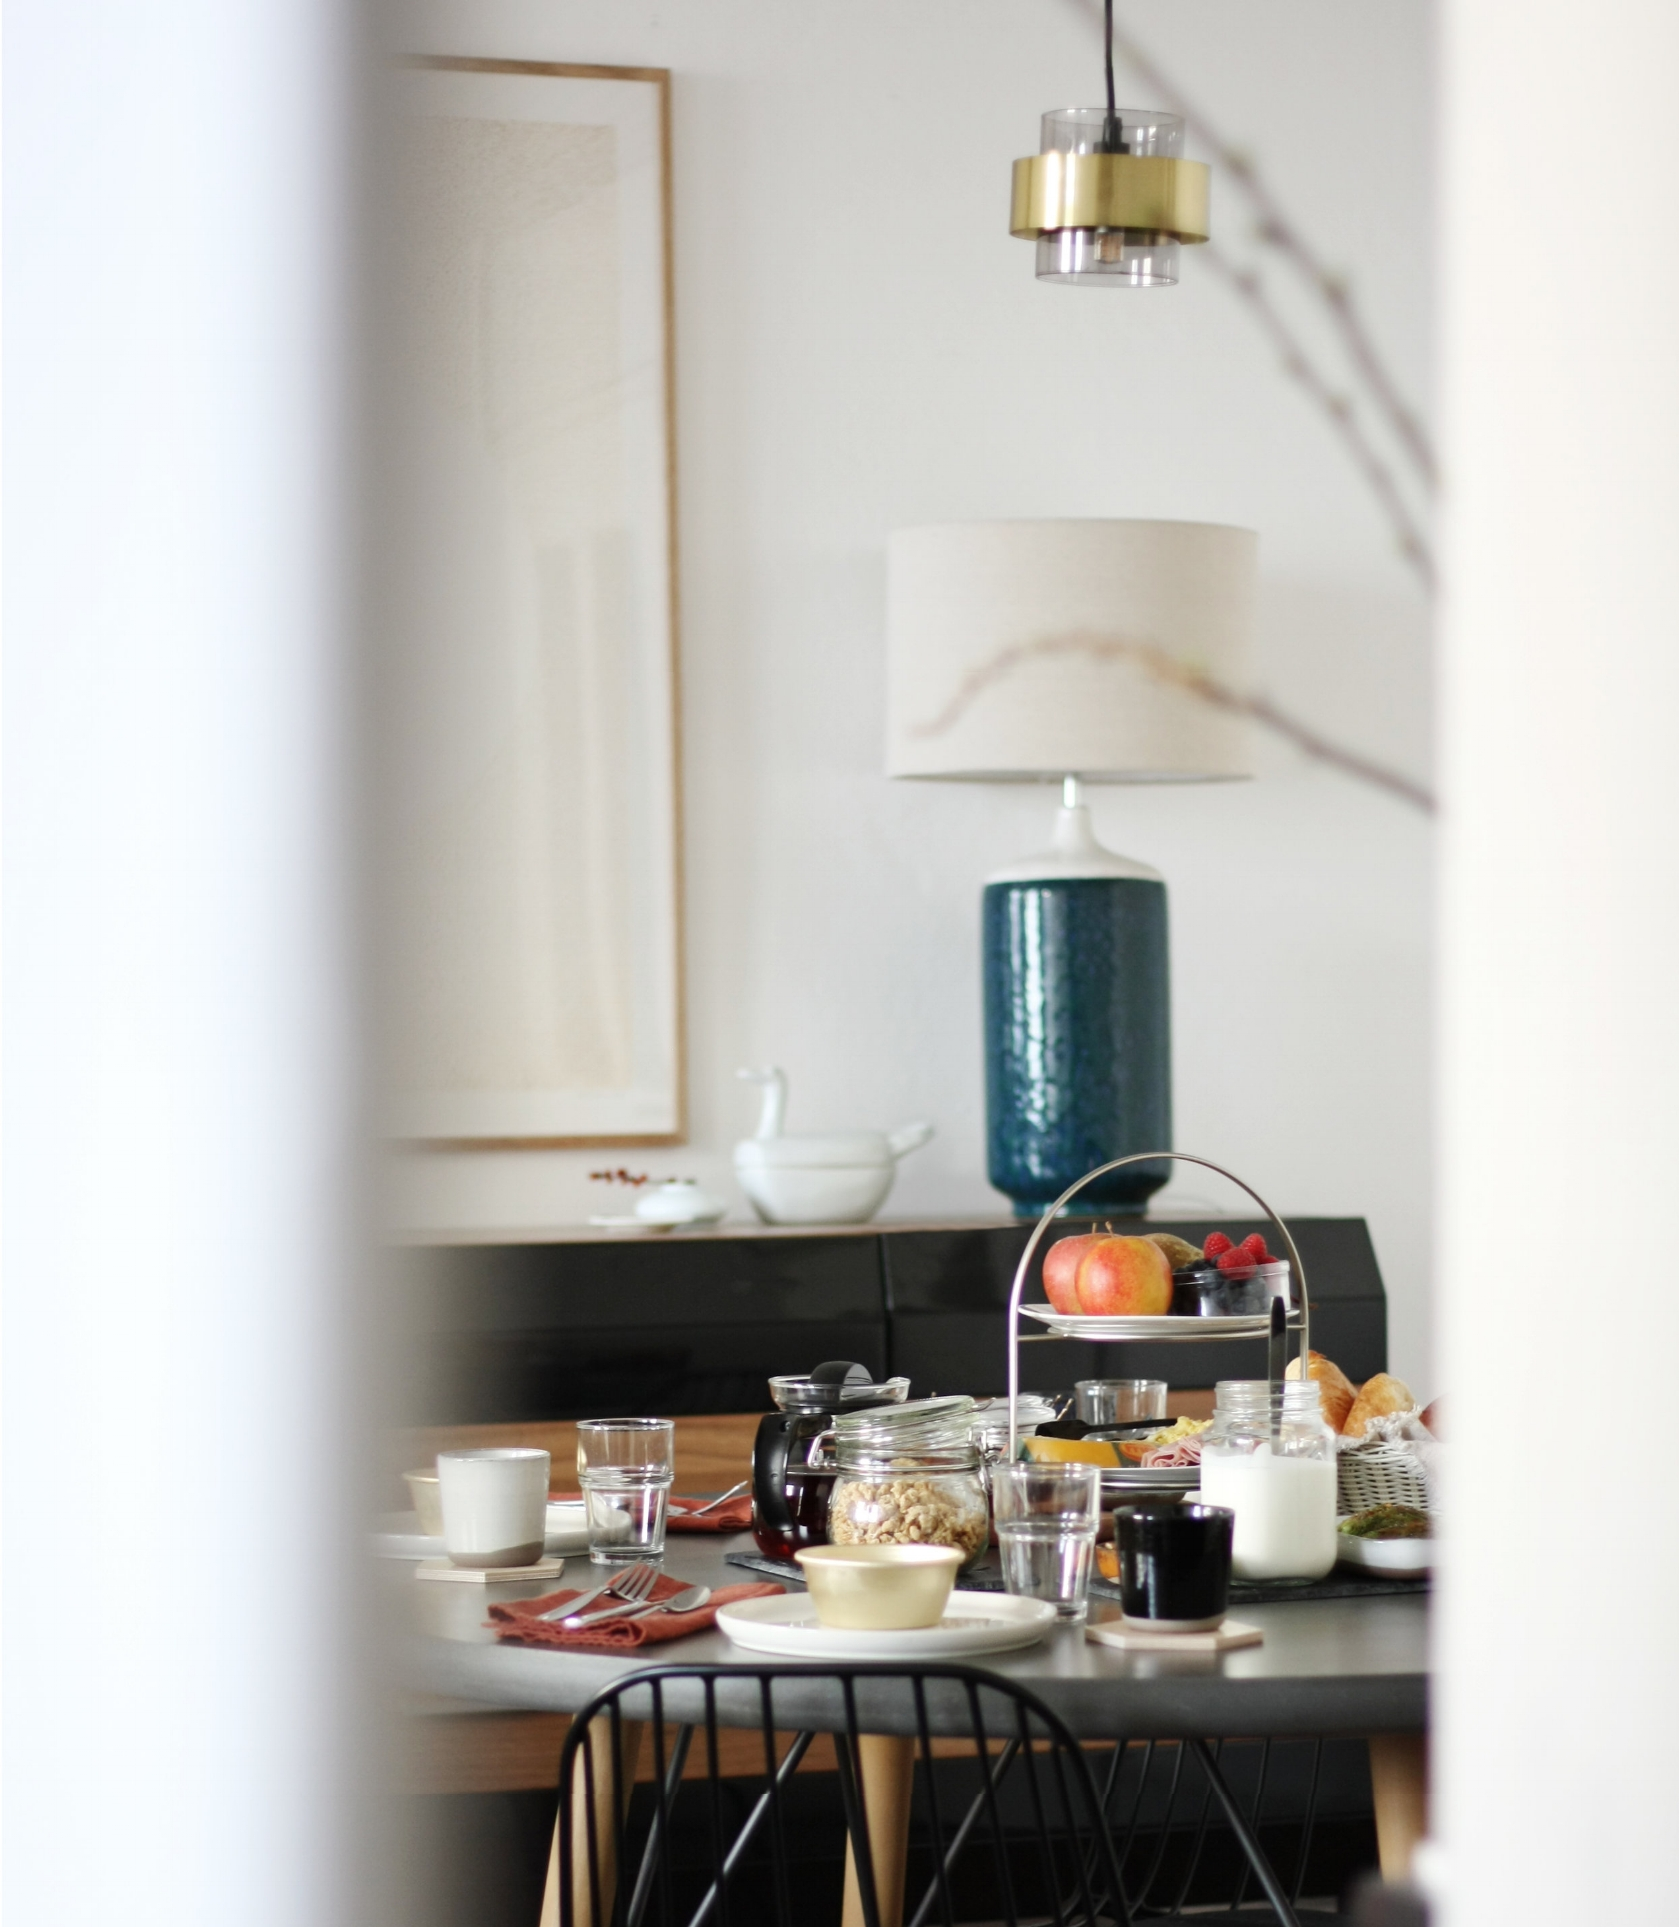 breakfast setting styling by lifestyle Si.jpg